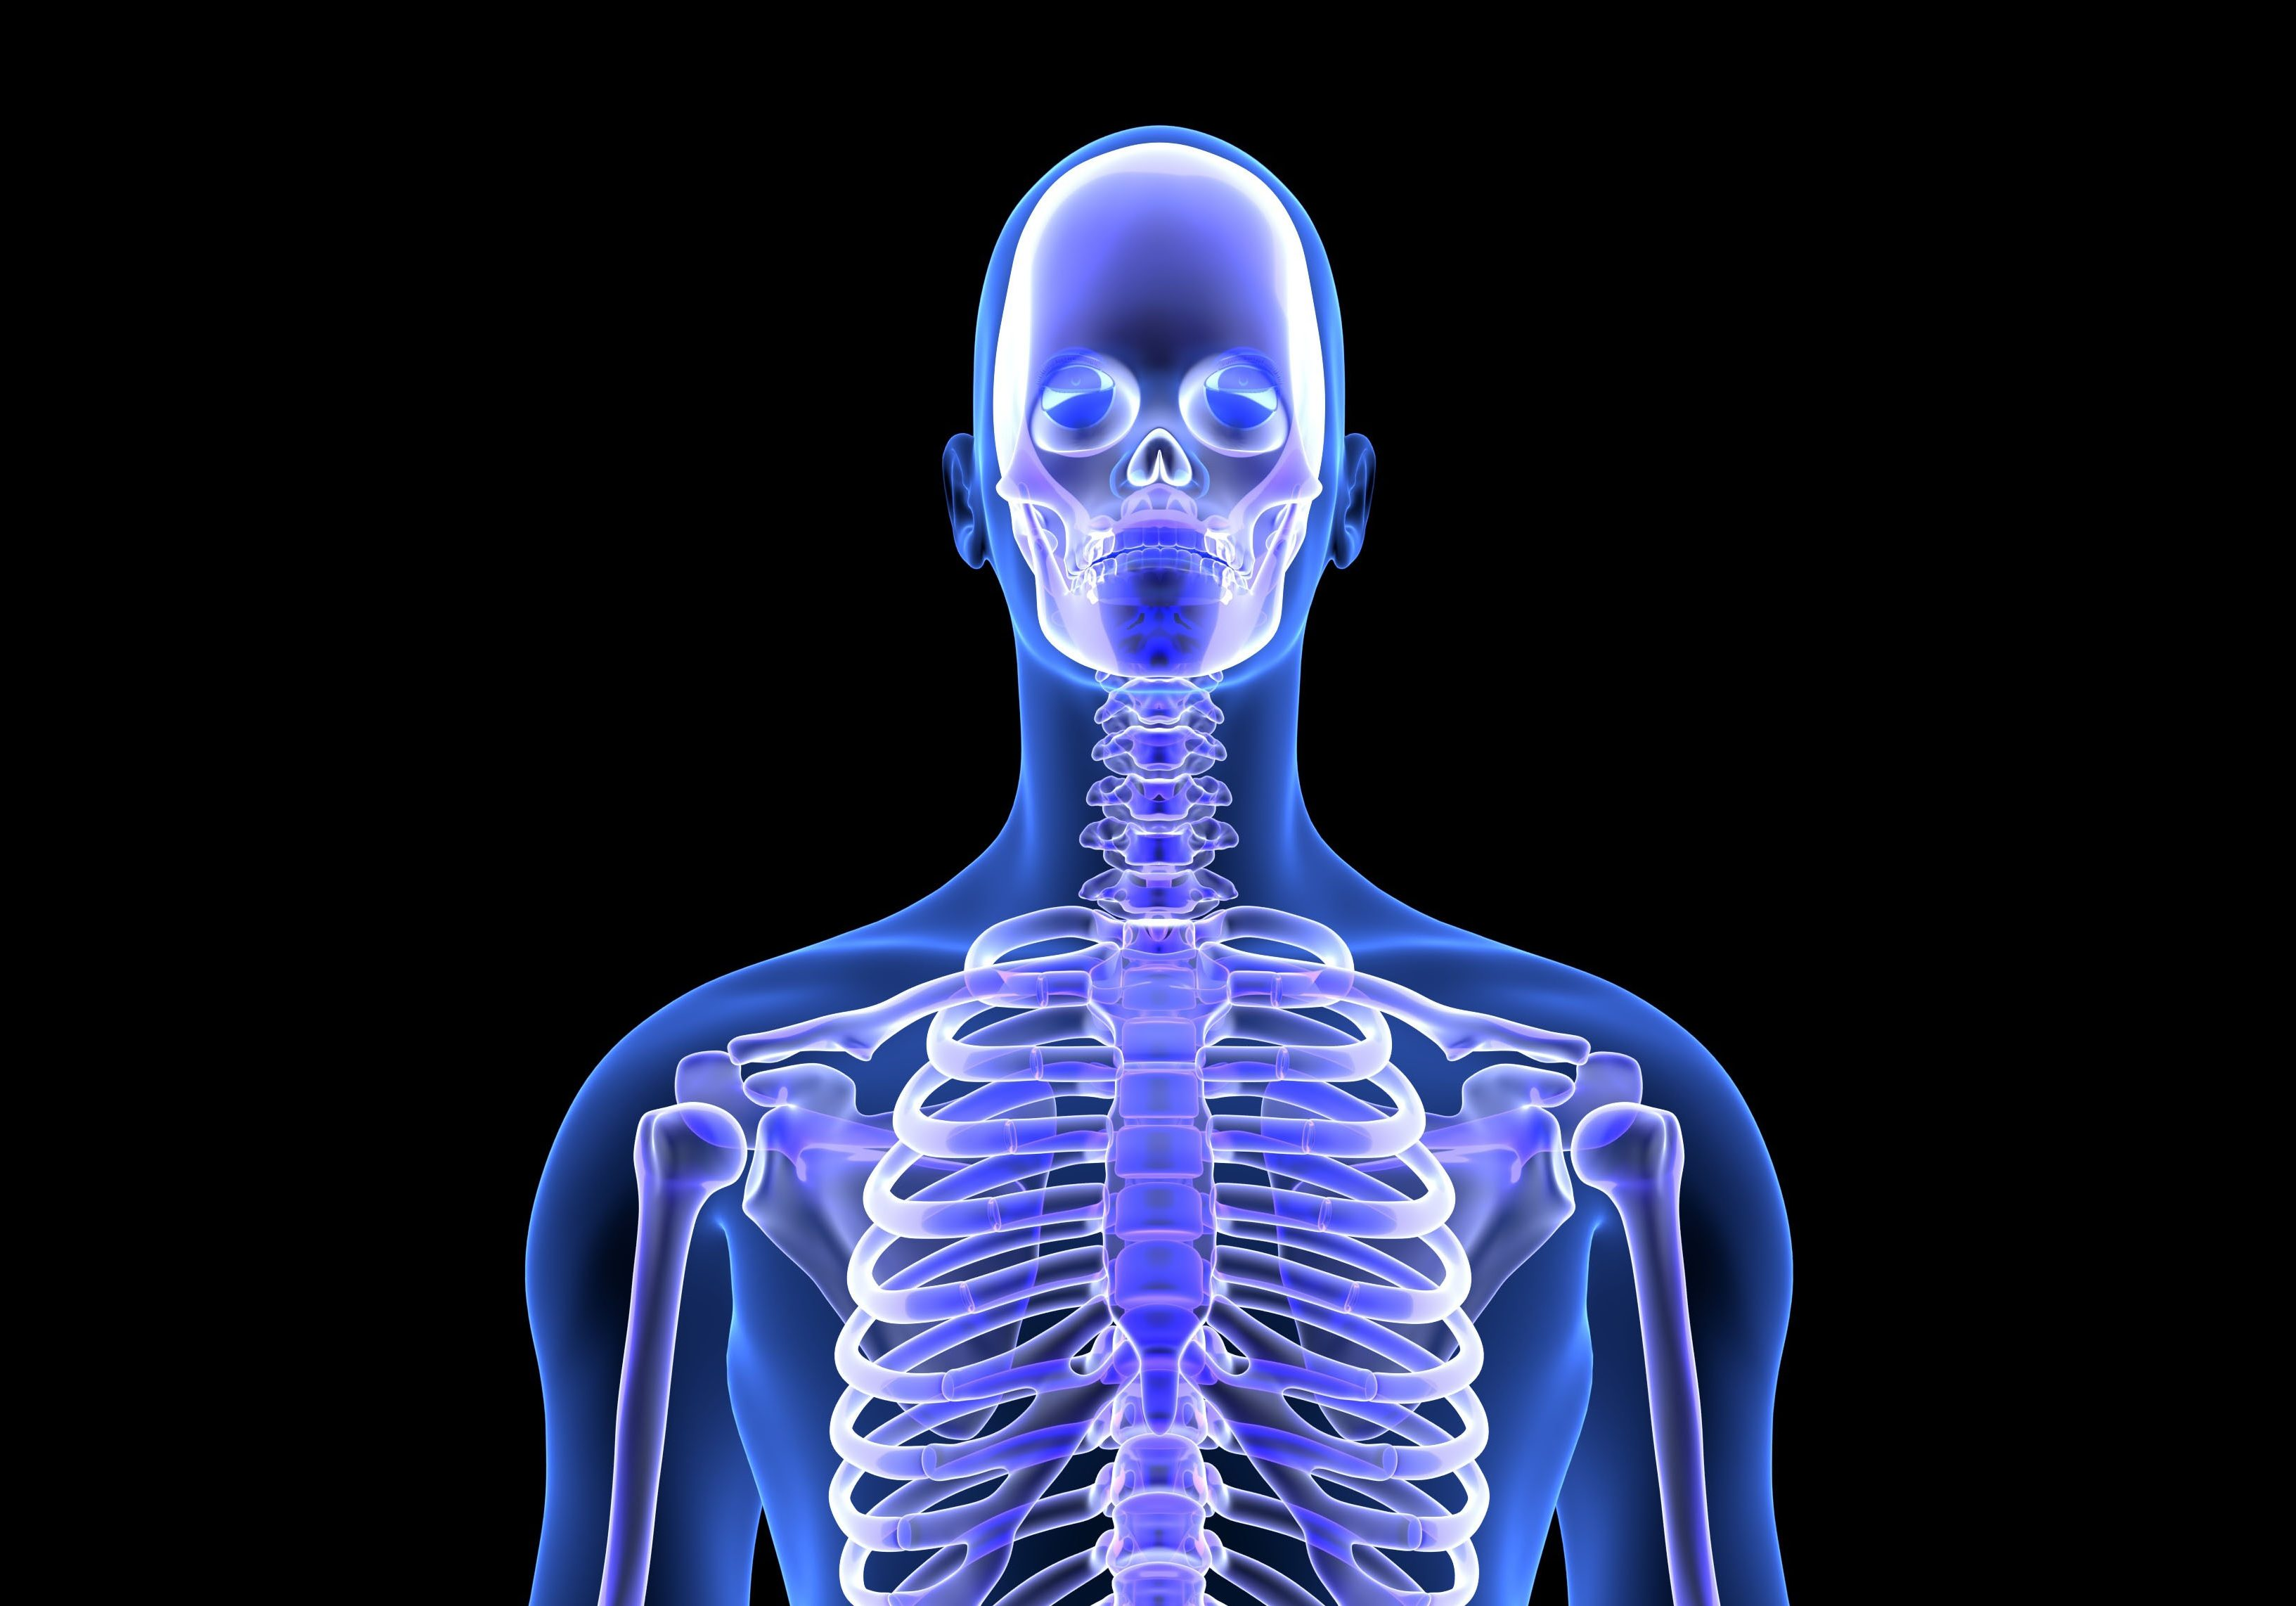 Blue Human Anatomy Body and Skeleton. 3D Scan render on black background